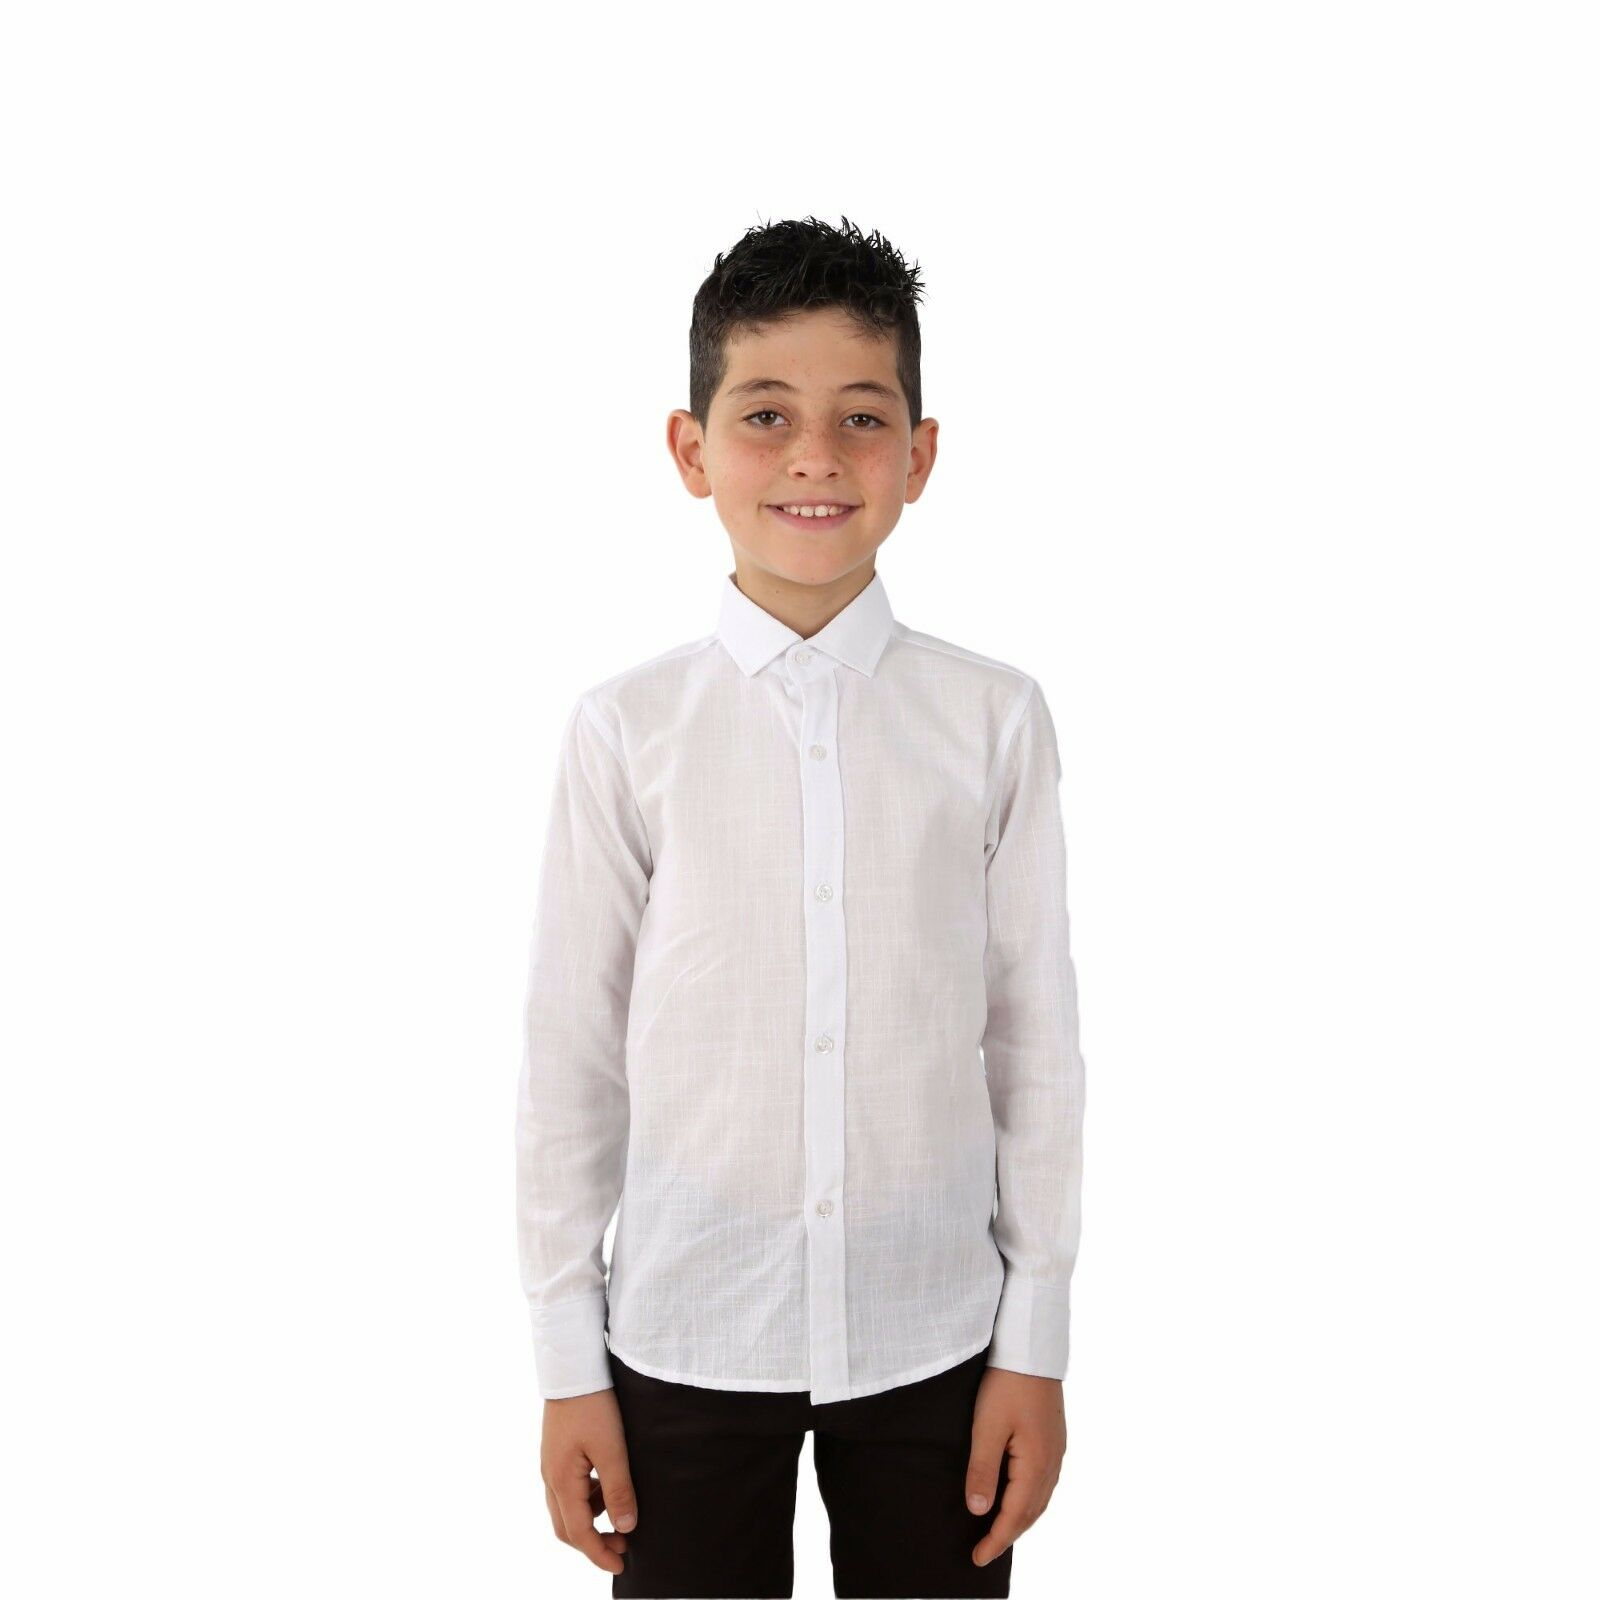 c41be871f46e Boys Linen White Shirts Kids Summer Long Sleeve Shirts Roll Up Sleeve Boy  Shirt